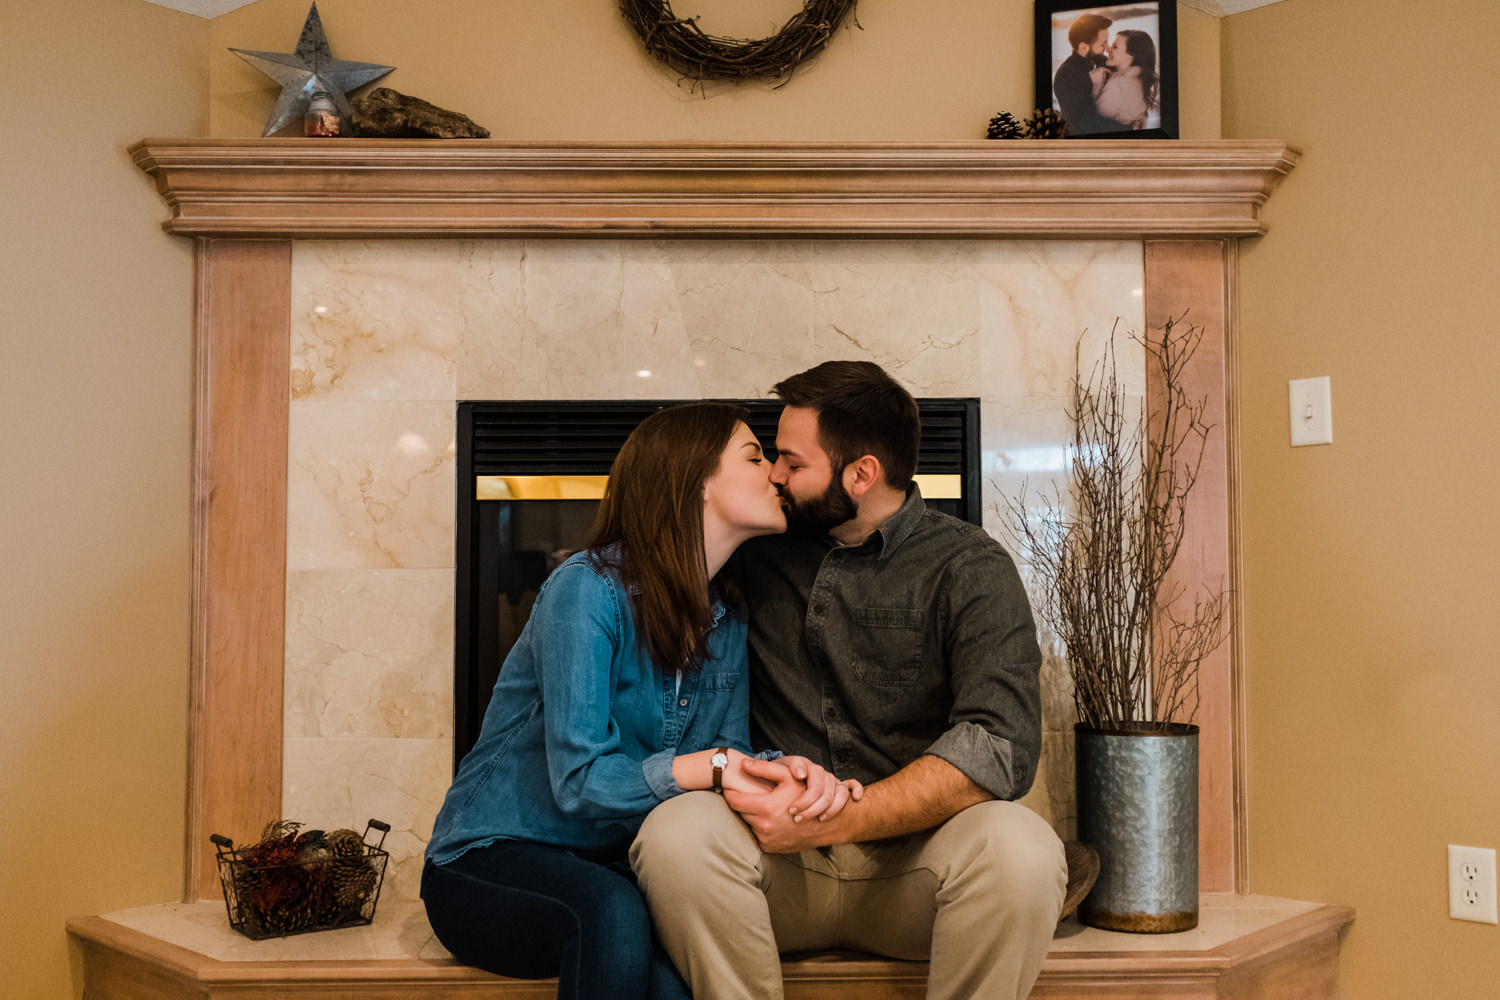 Wichita, Kansas Couples Session-In Home Session-Anniversary Session-Wichita, Kansas Portrait Photographer-Neal Dieker-162.jpg